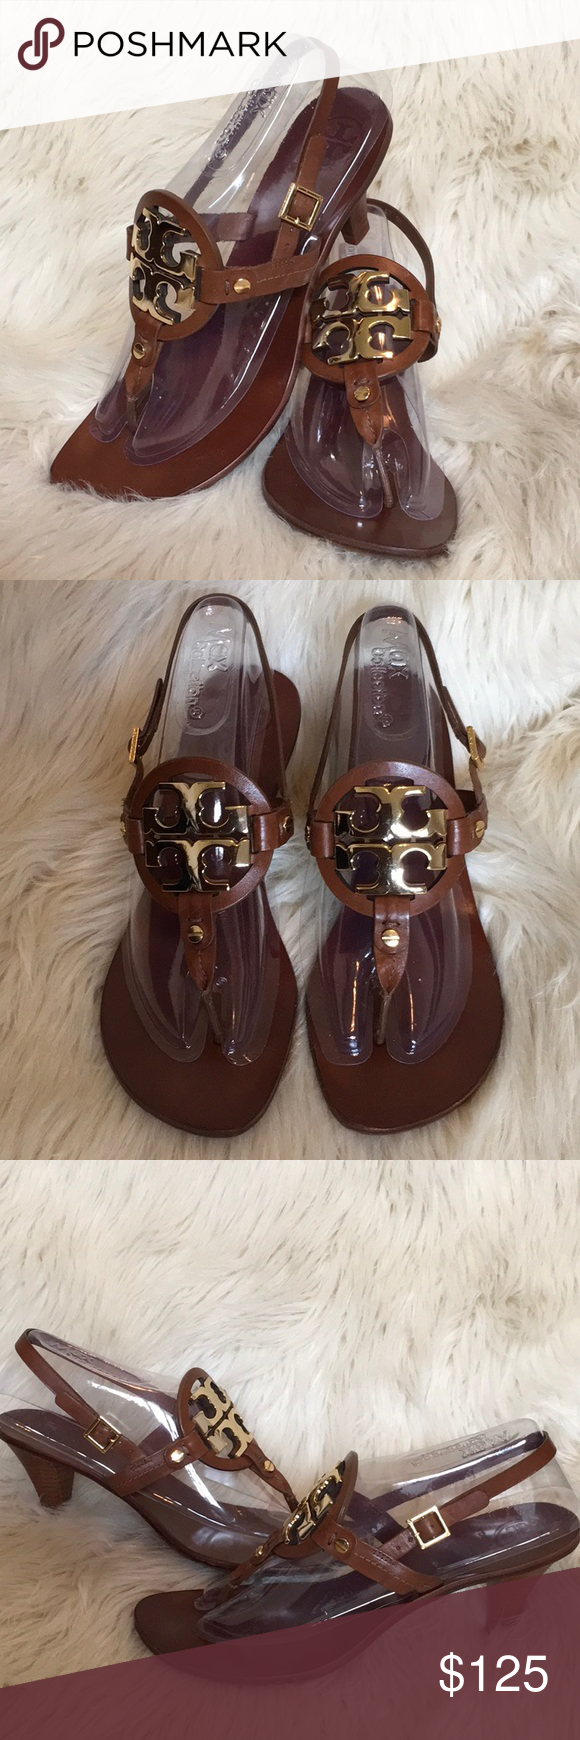 a5fafd2202e TORY BURCH Holly Brown Leather Logo Sandals EUC 9M TORY BURCH Holly Brown  Milled Leather Logo